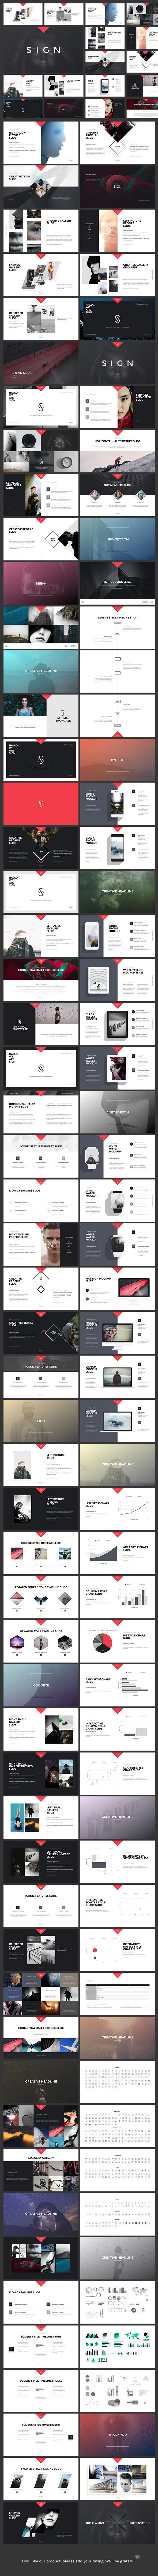 SIGN Keynote Presentation - Creative Keynote Templates